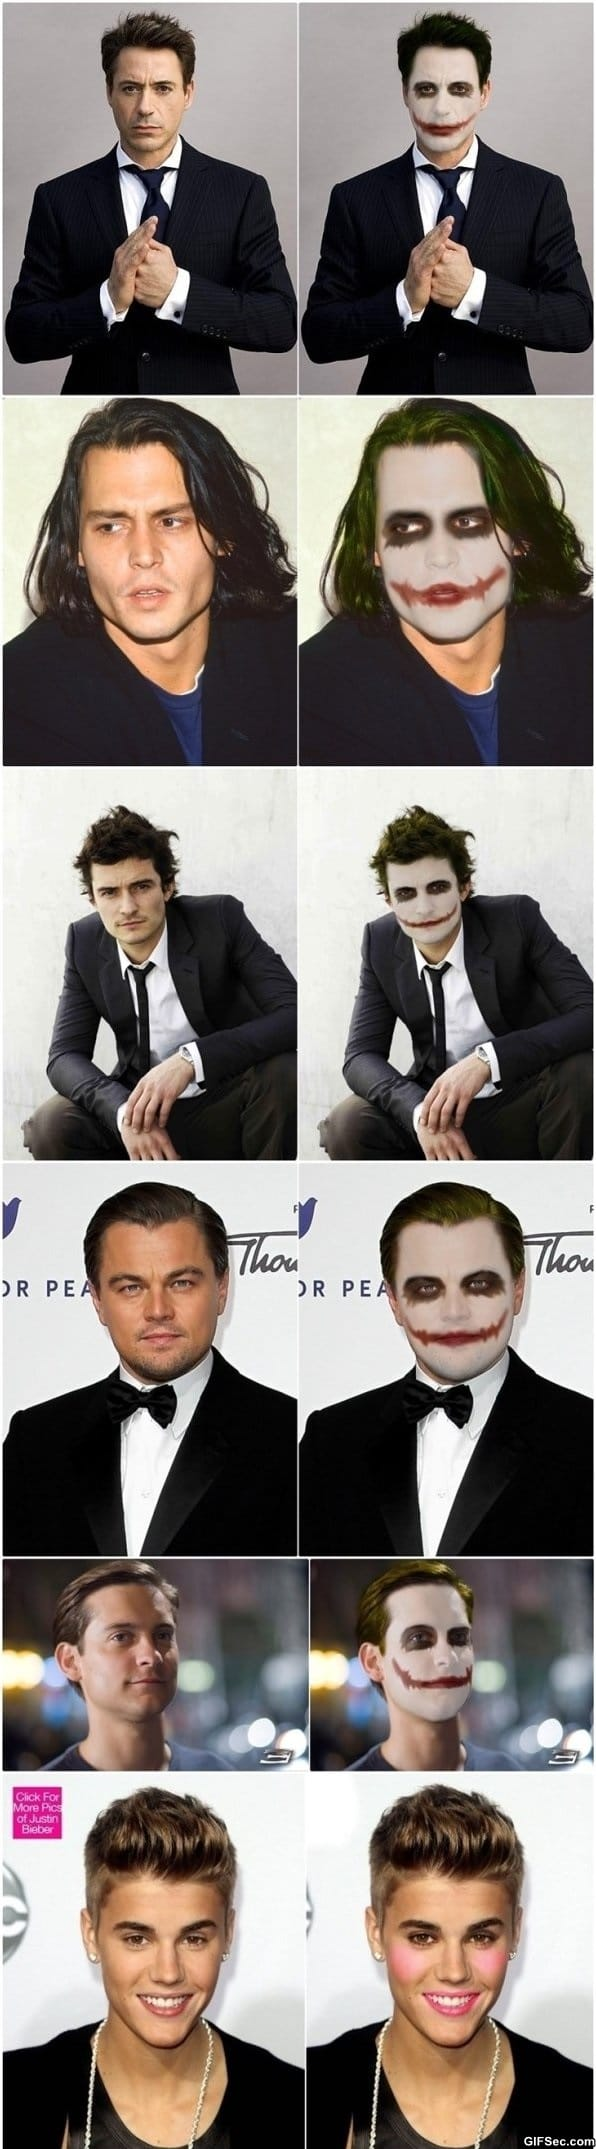 meme-its-about-joker